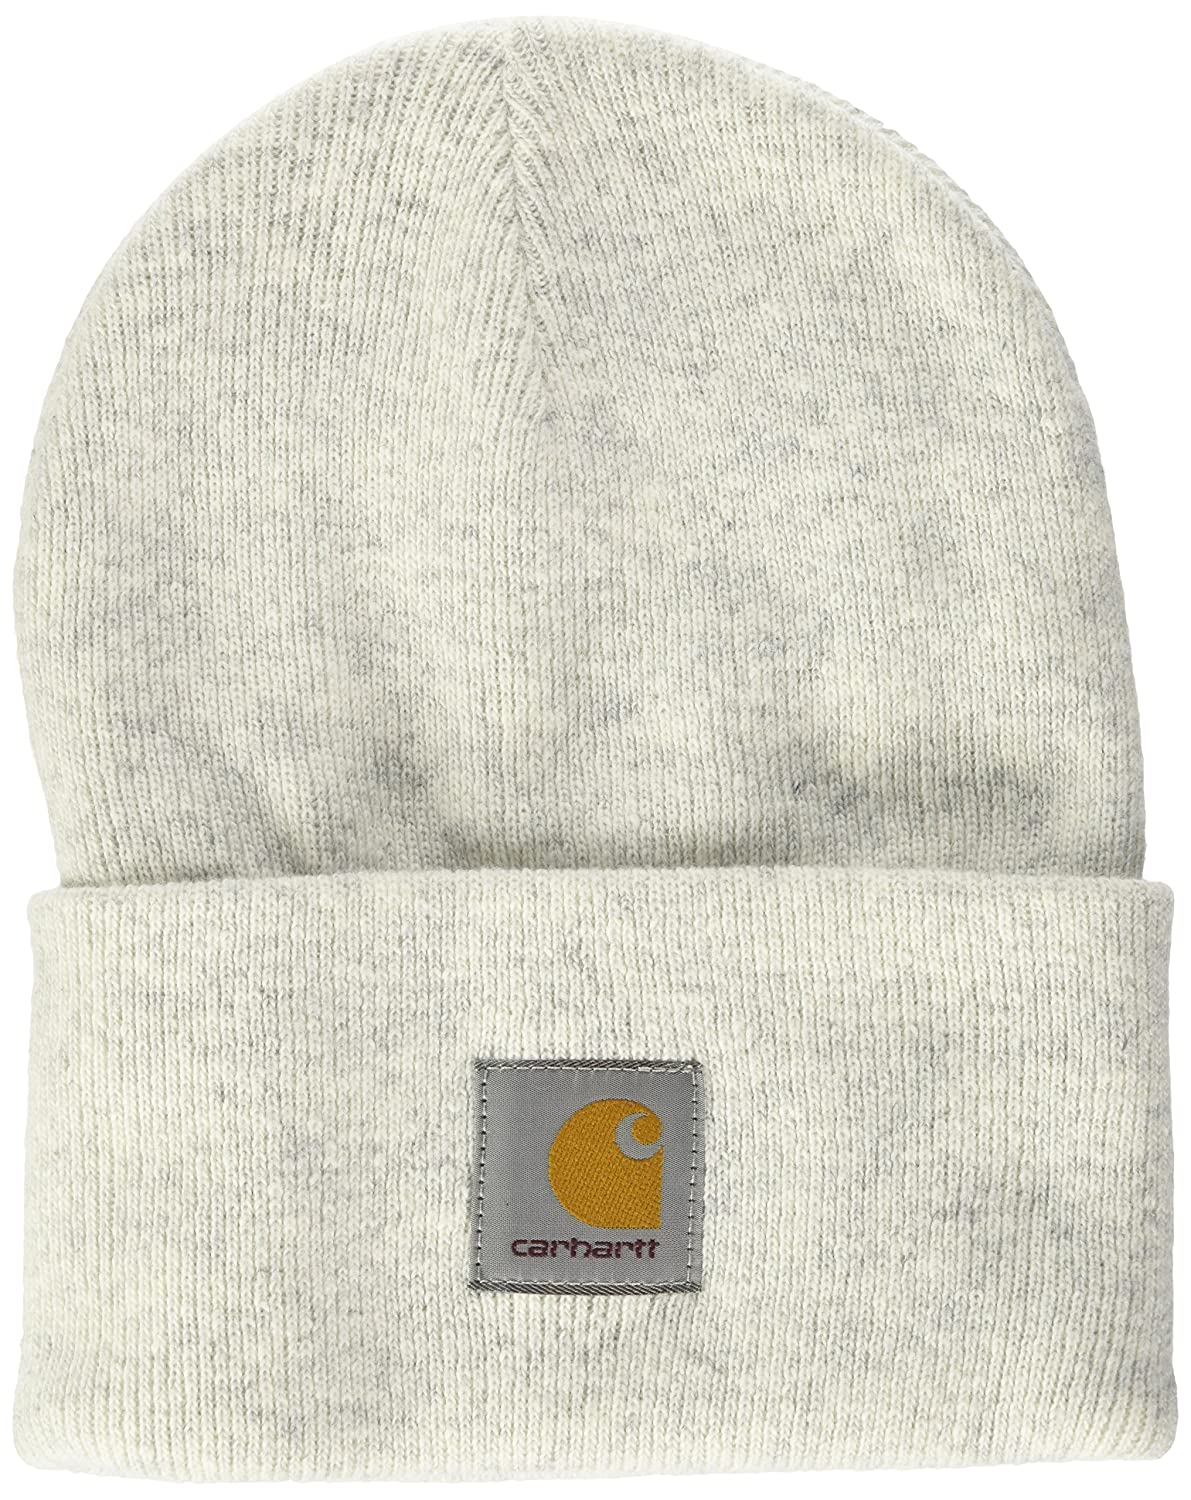 Carhartt Herren Baskenmütze I020175, Grau (Ash Heather), One size